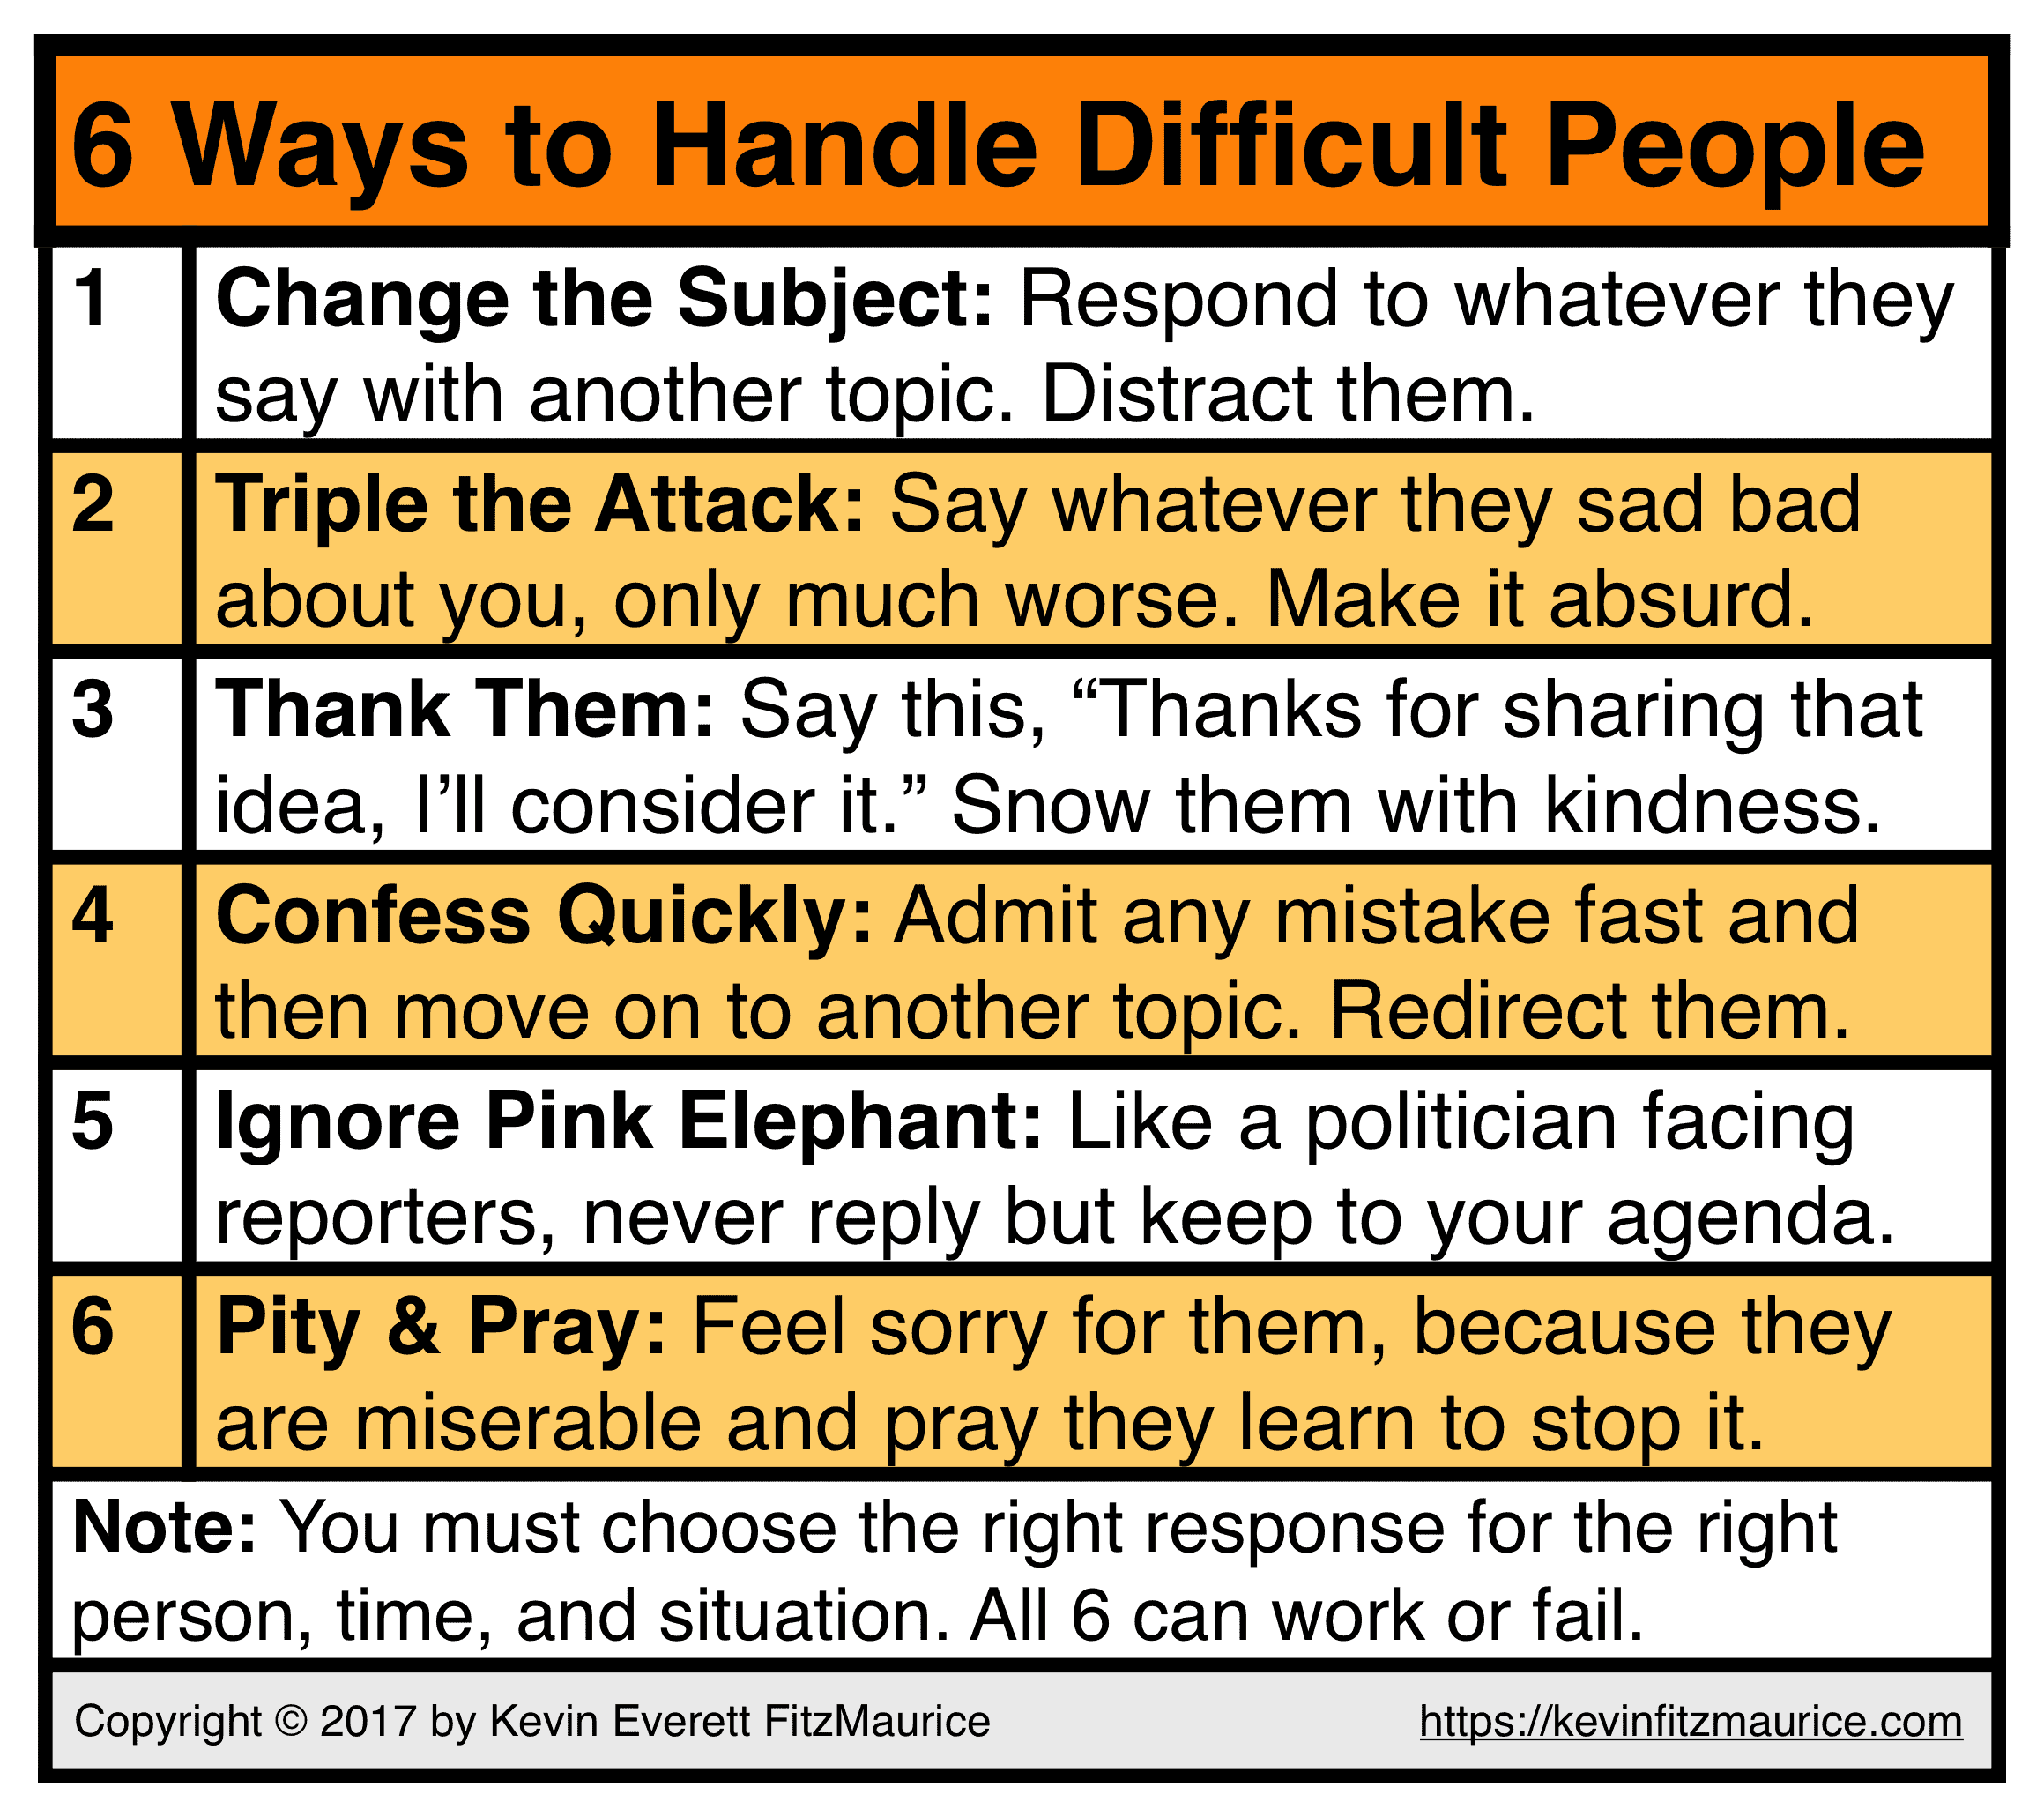 6 Ways to Handle People